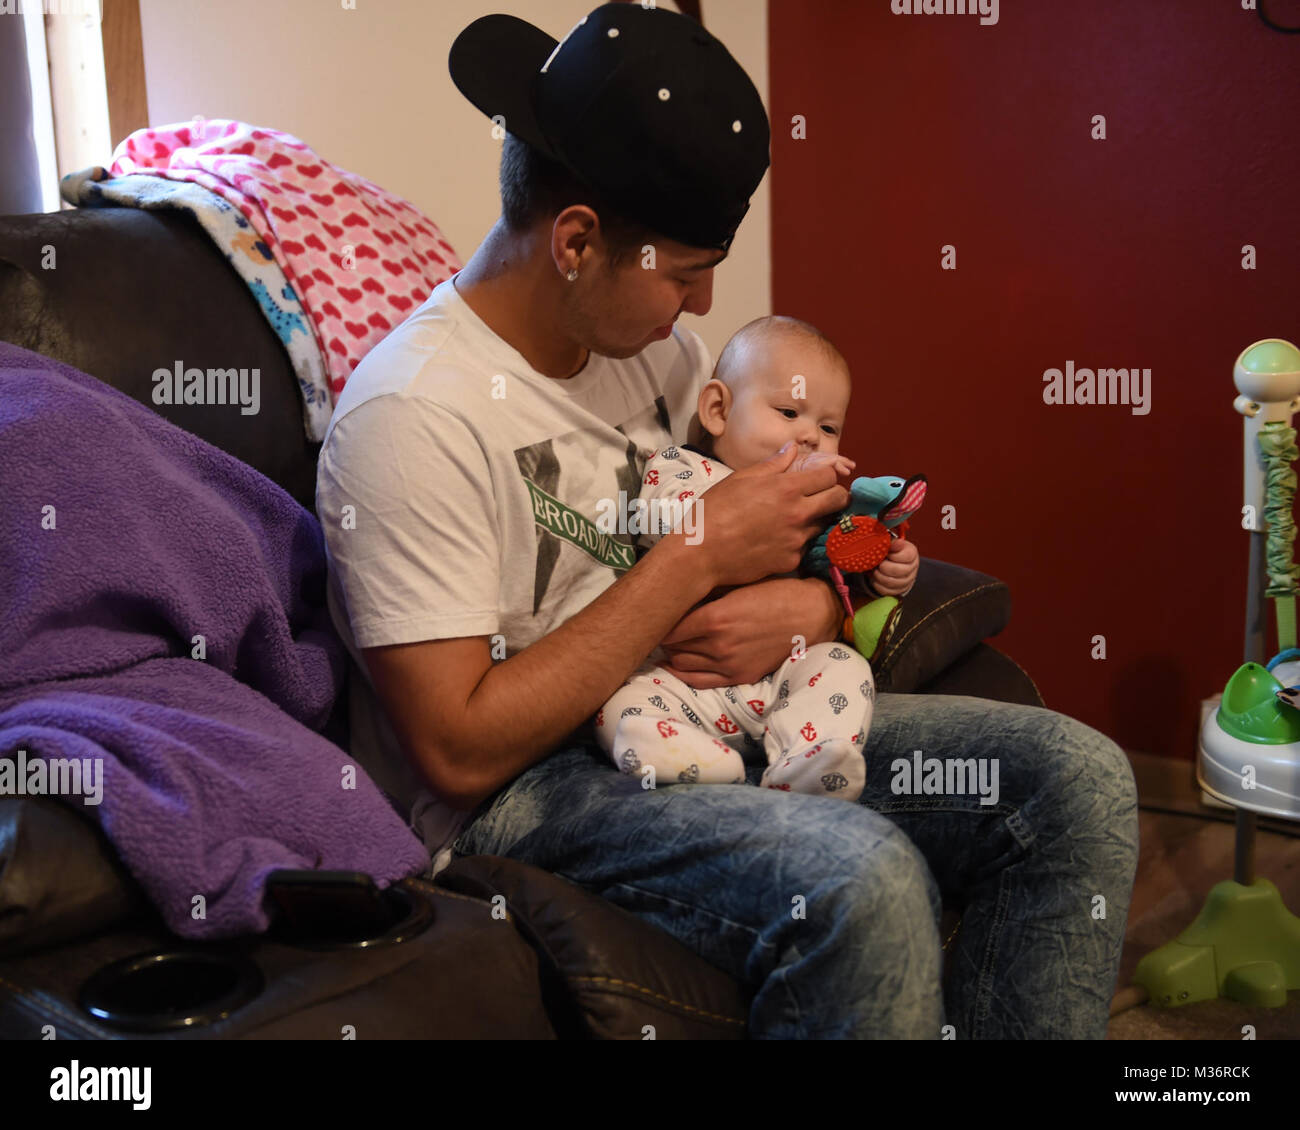 Tyger Rodriguez, 17, of Torrington, Wyoming, holds his six-month-old son Kyson, during his home visit from Wyoming - Stock Image